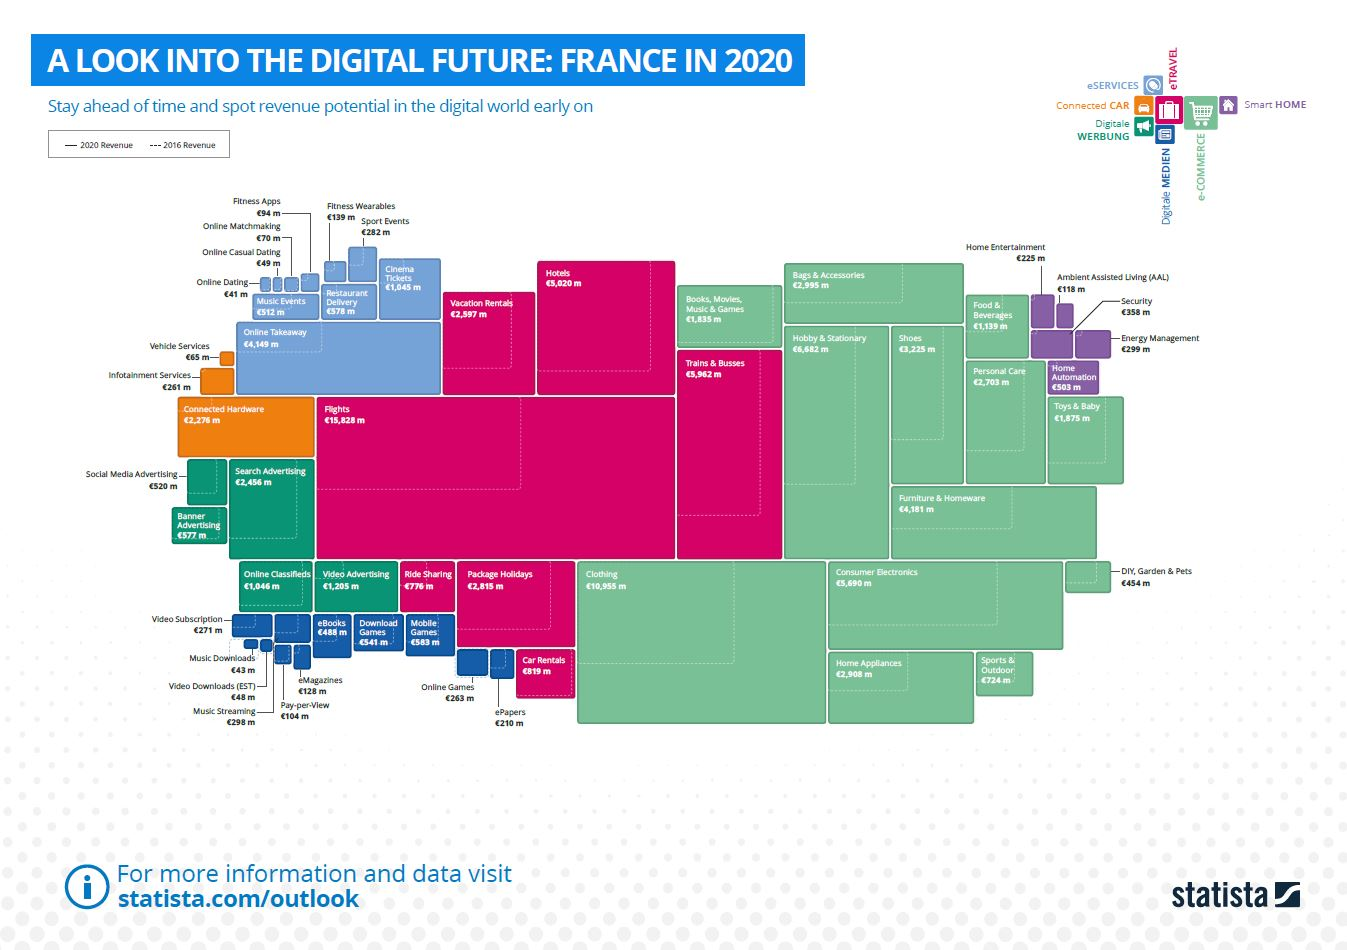 A Look Into The Digital Future: France in 2020